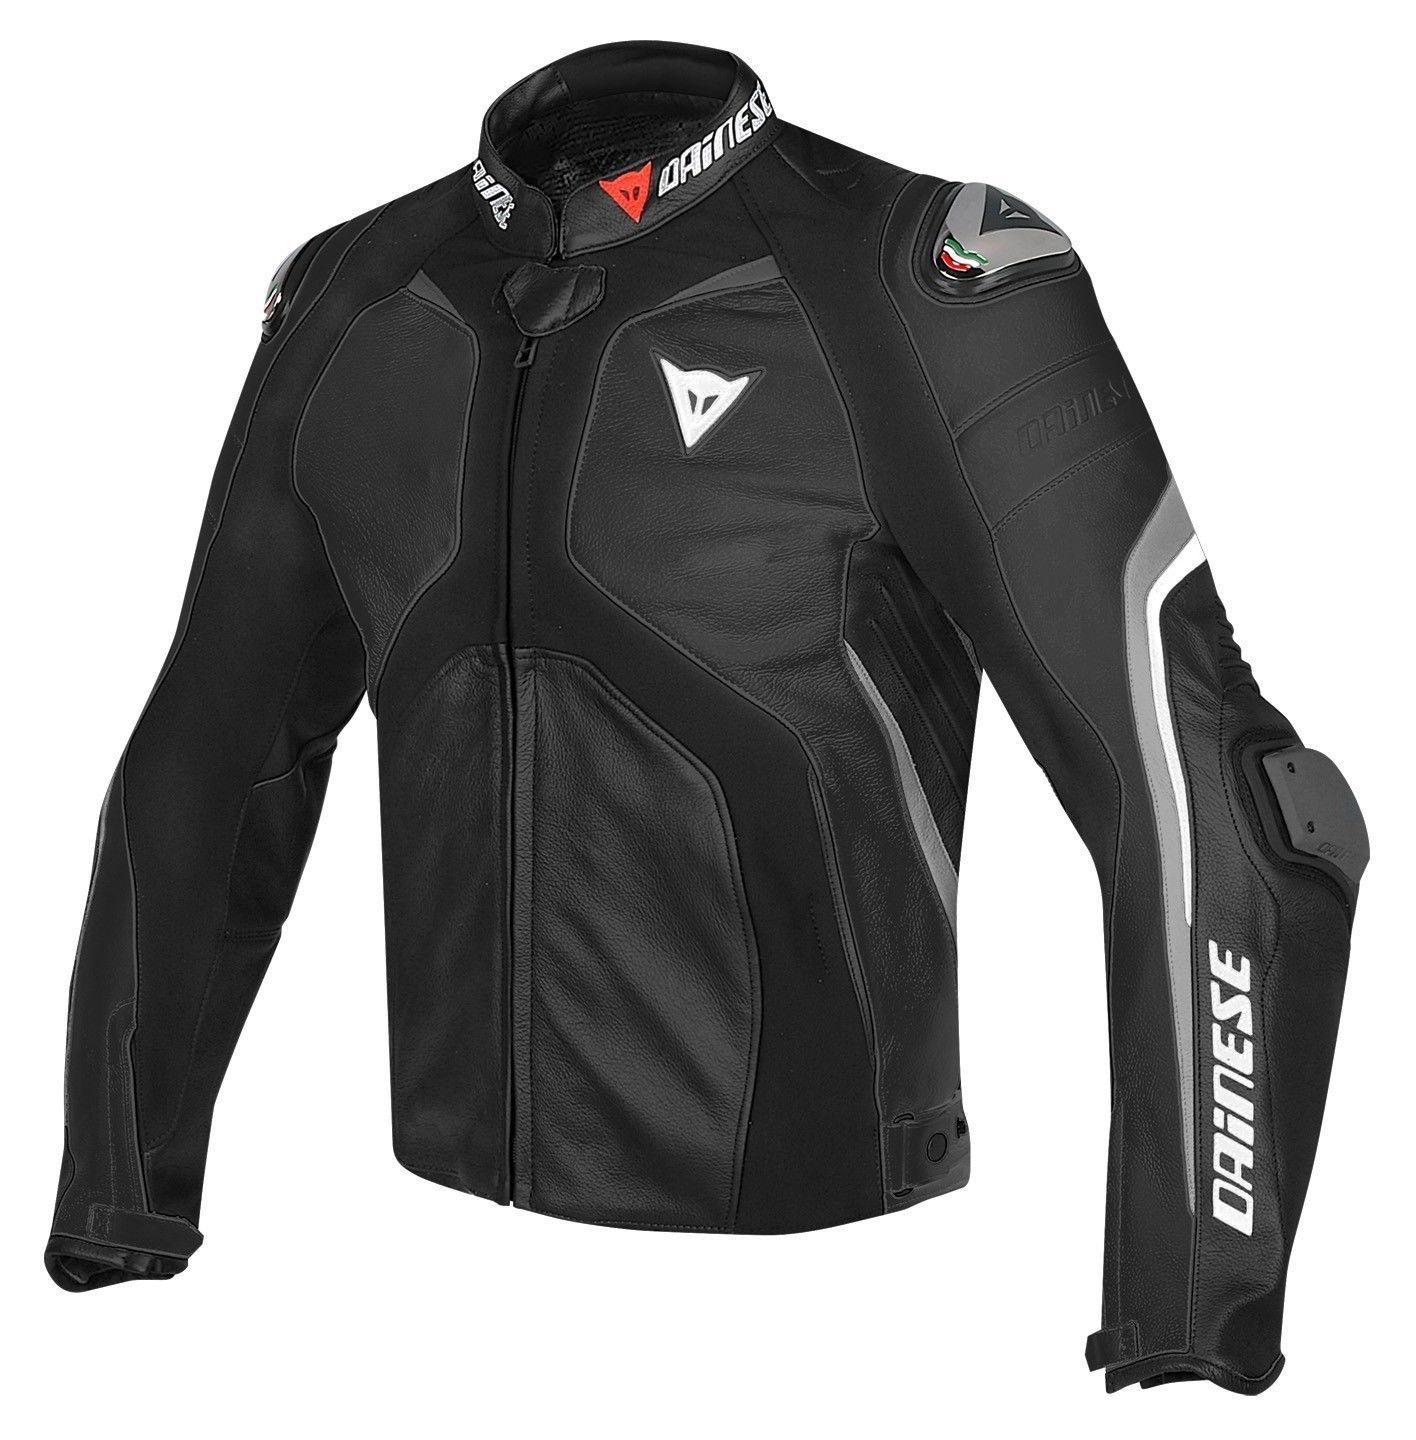 Hot Out Of Dainese S R D Department Comes The Latest In Rider